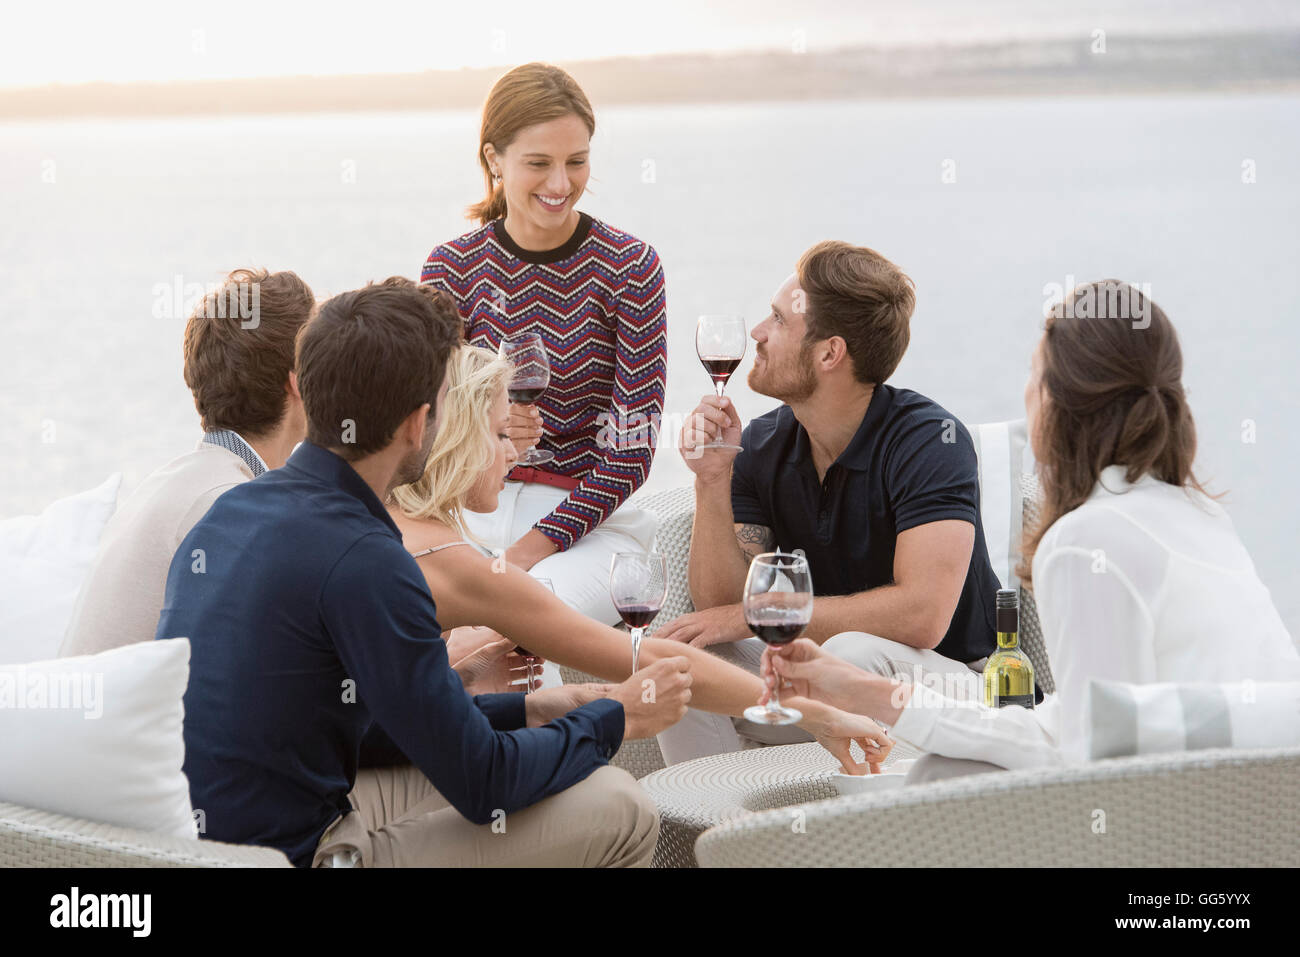 Group of friends enjoying wines at outdoors party - Stock Image